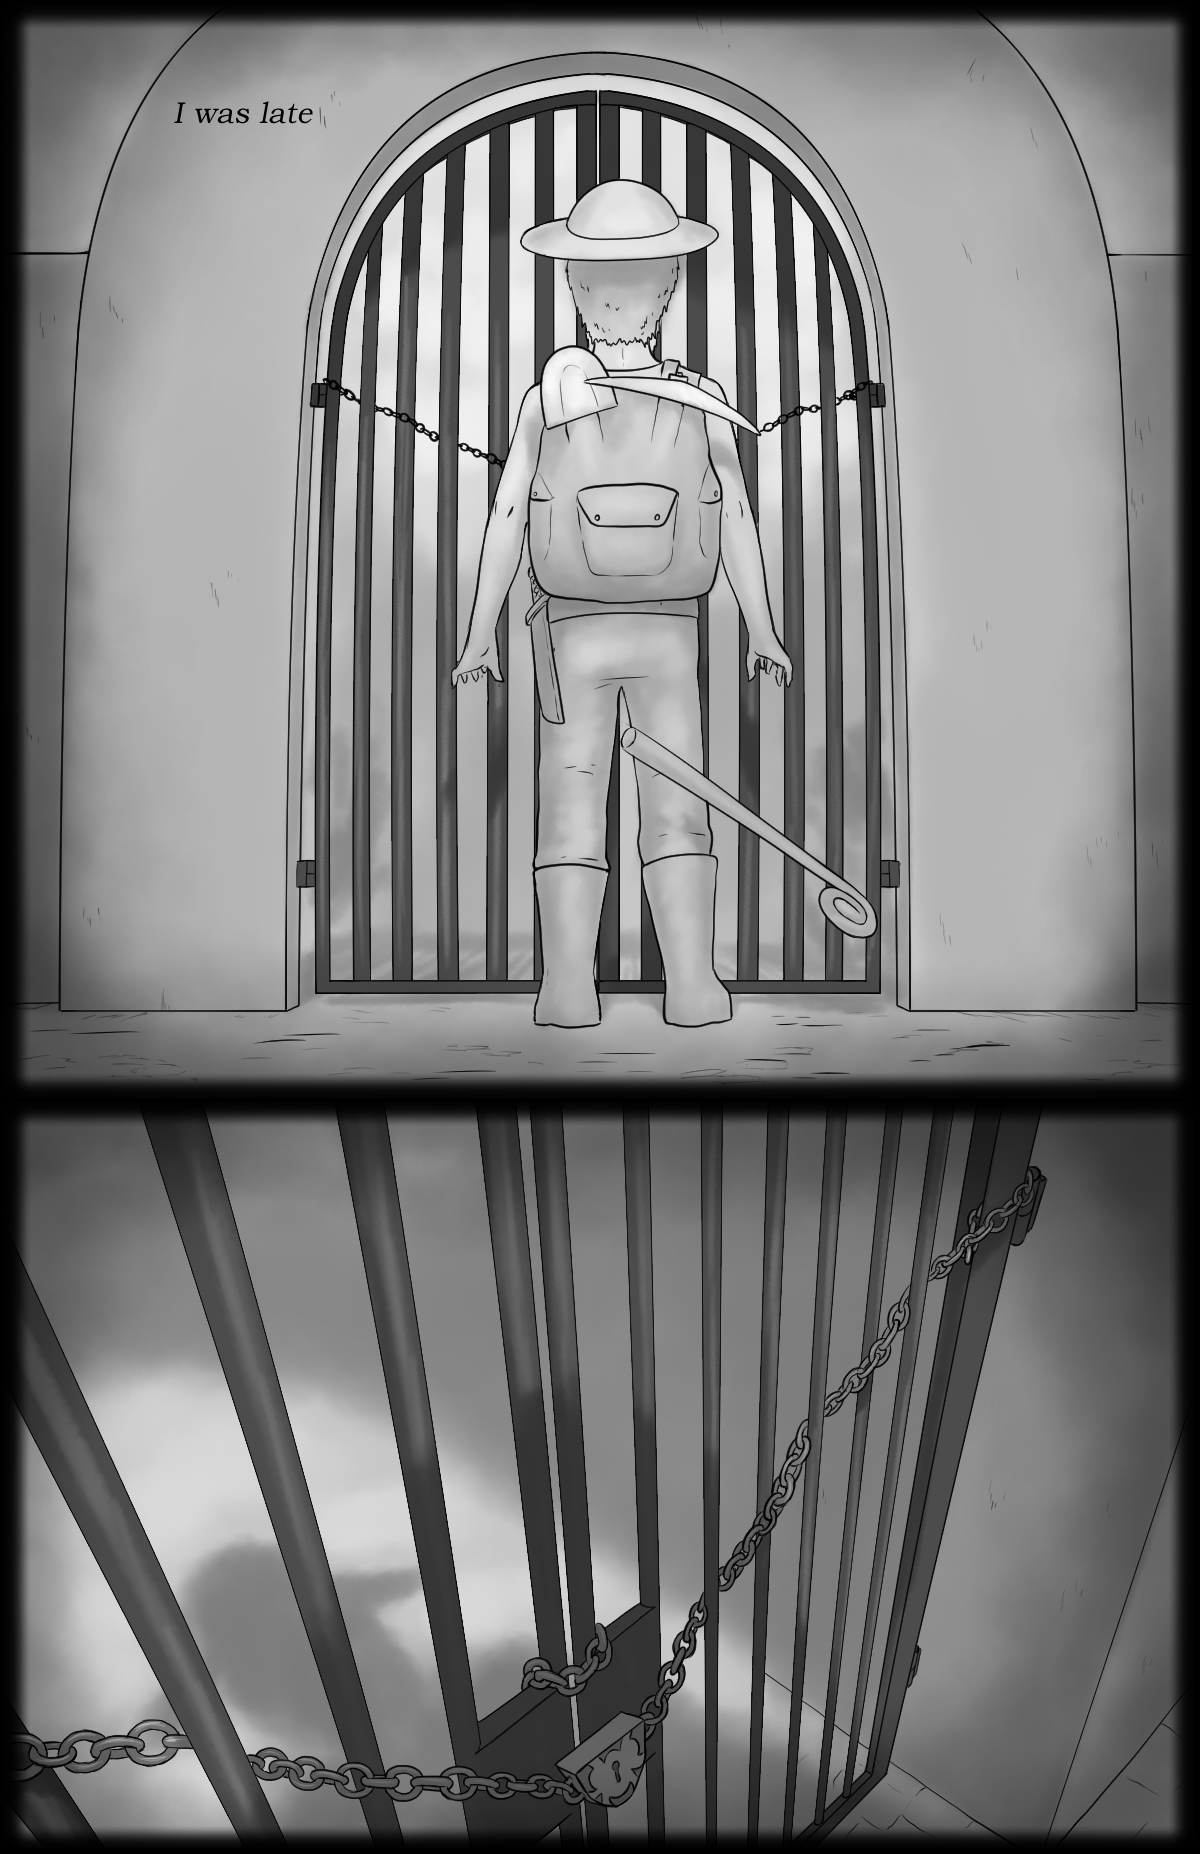 Page 99 - The lost treasure (Part 3)